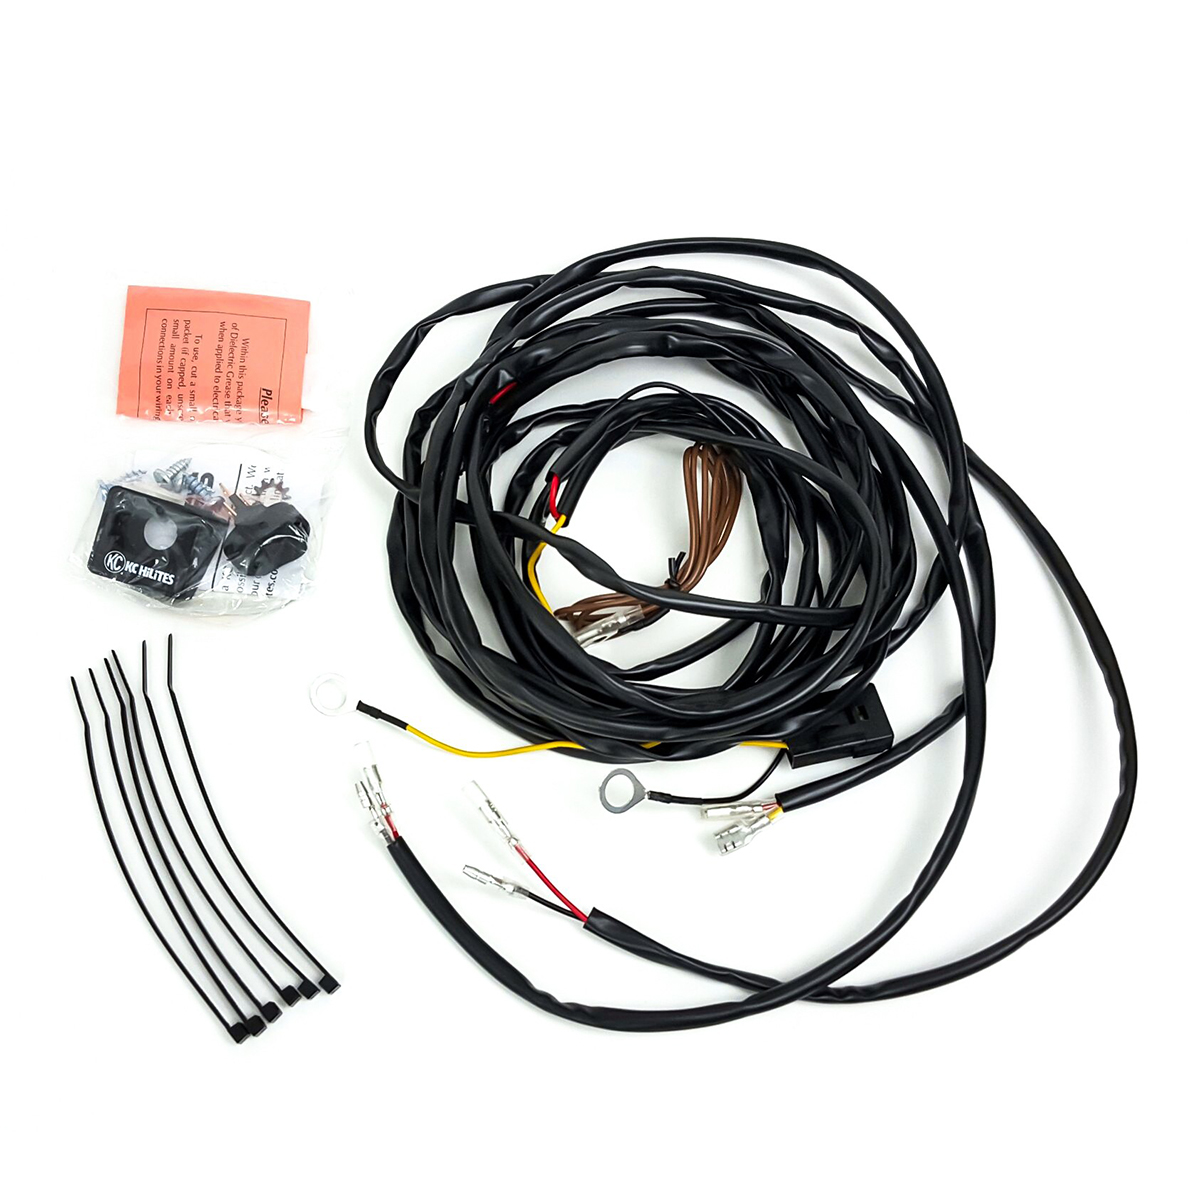 wire harness for 2 cyclone lights  u2013 desolate motorsports